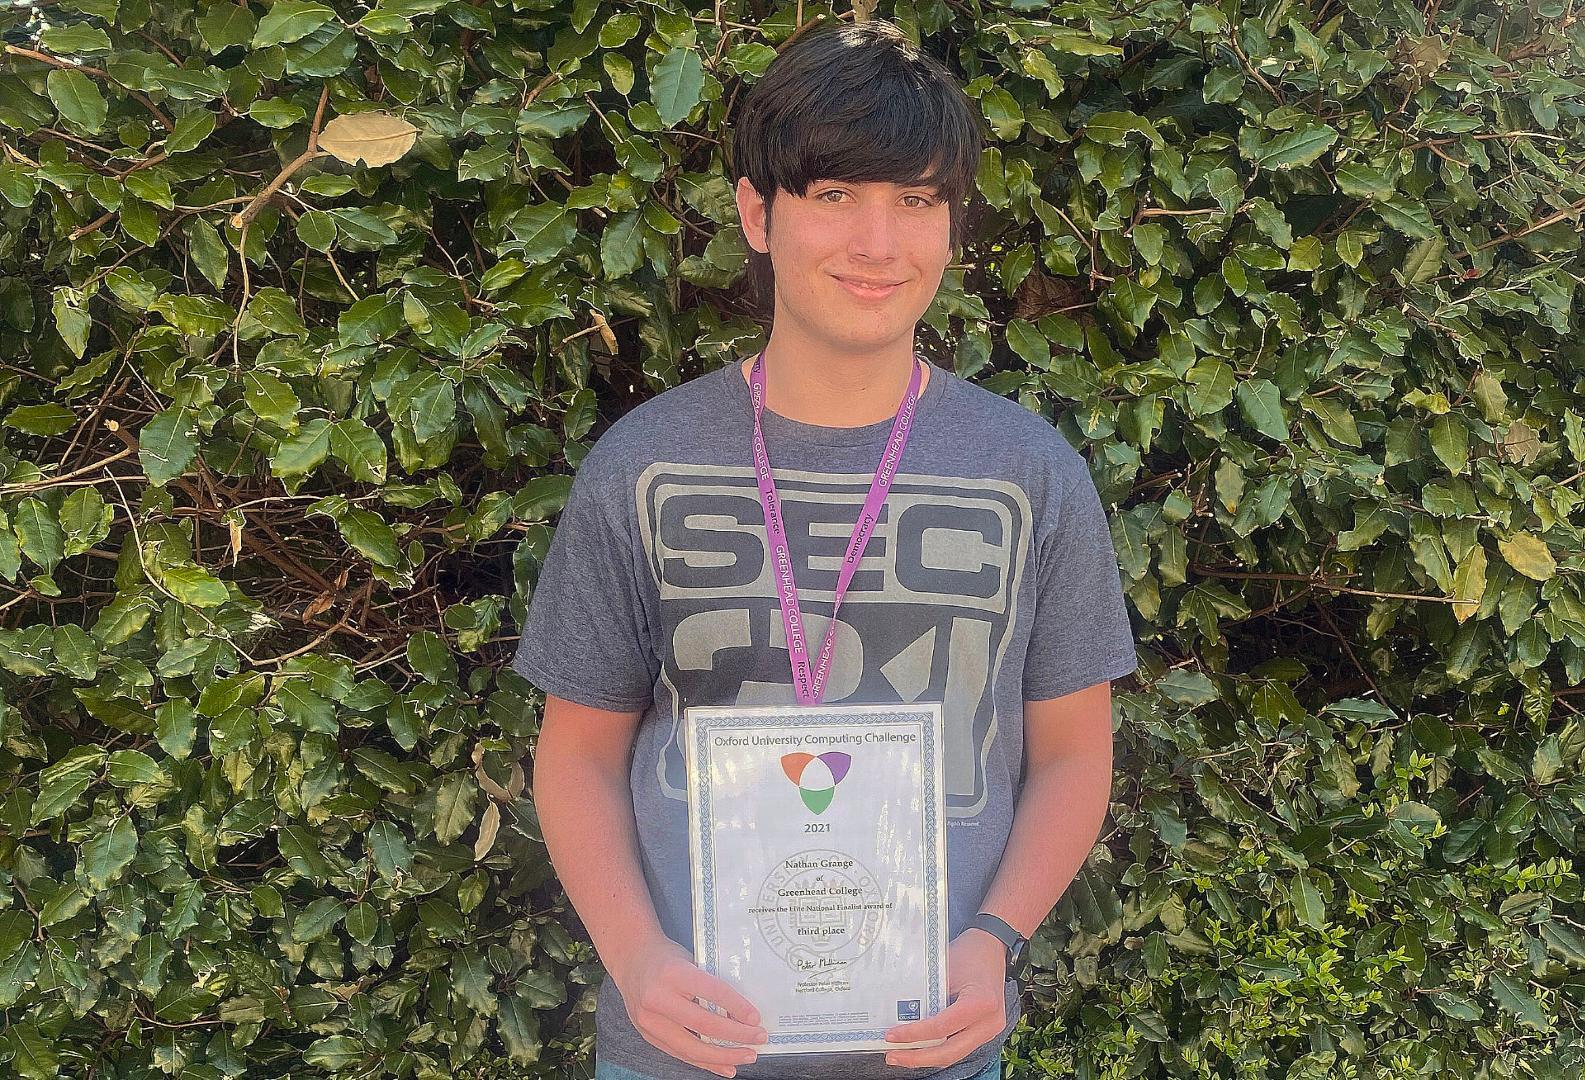 A1 student Nathan celebrates 3rd place in the national Oxford Computing Competition